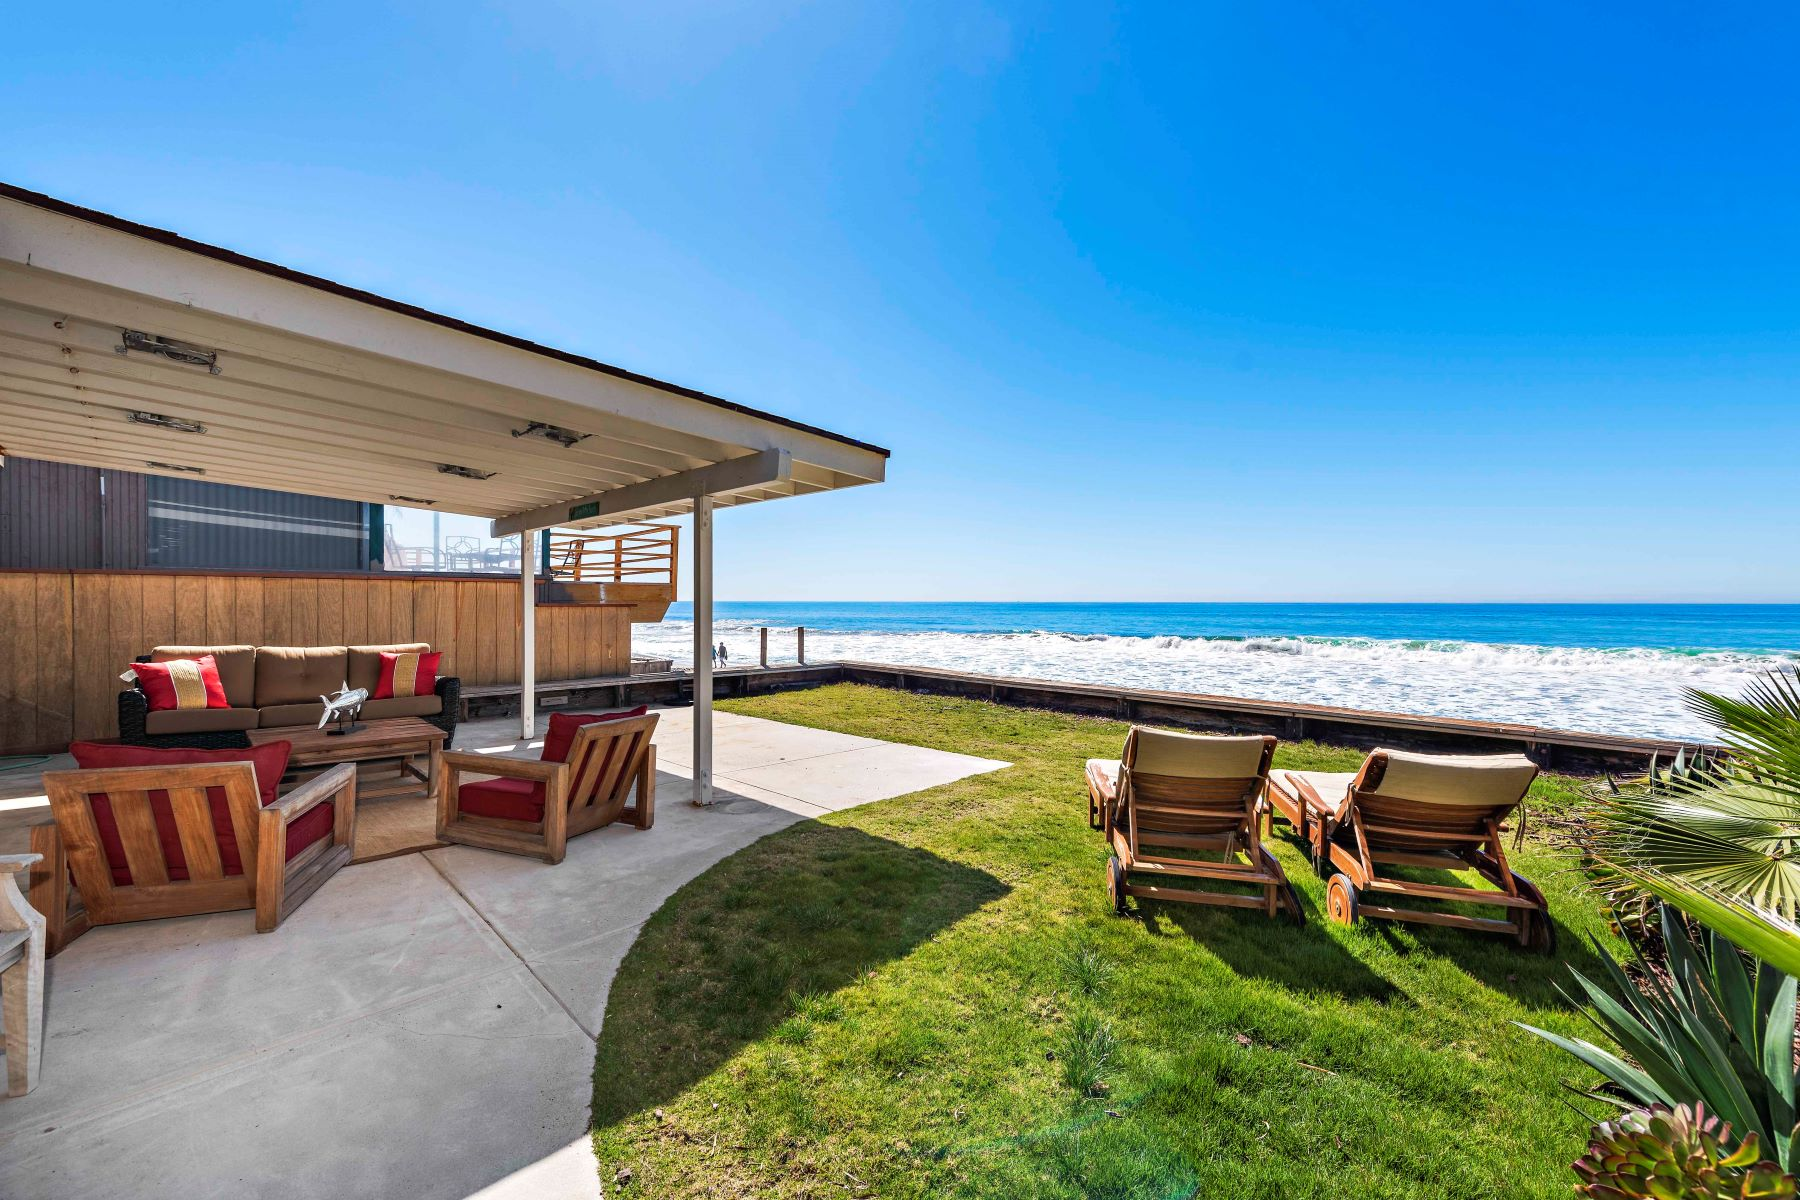 Single Family Homes for Active at 35575 Beach Road Dana Point, California 92624 United States